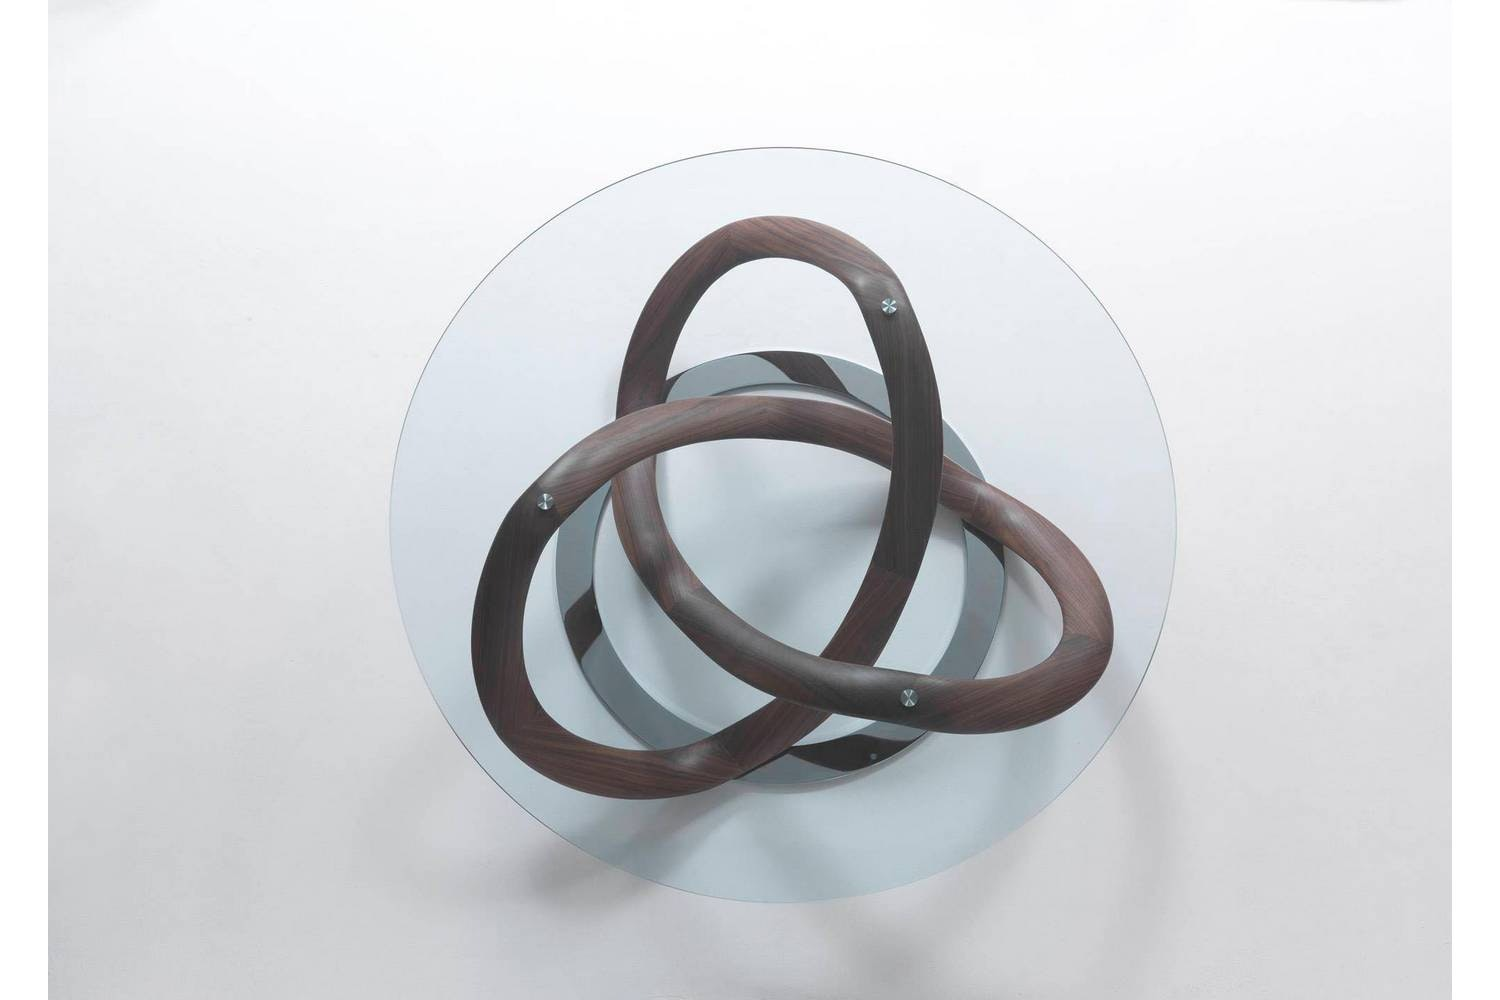 Infinity Coffee Table by S. Bigi for Porada